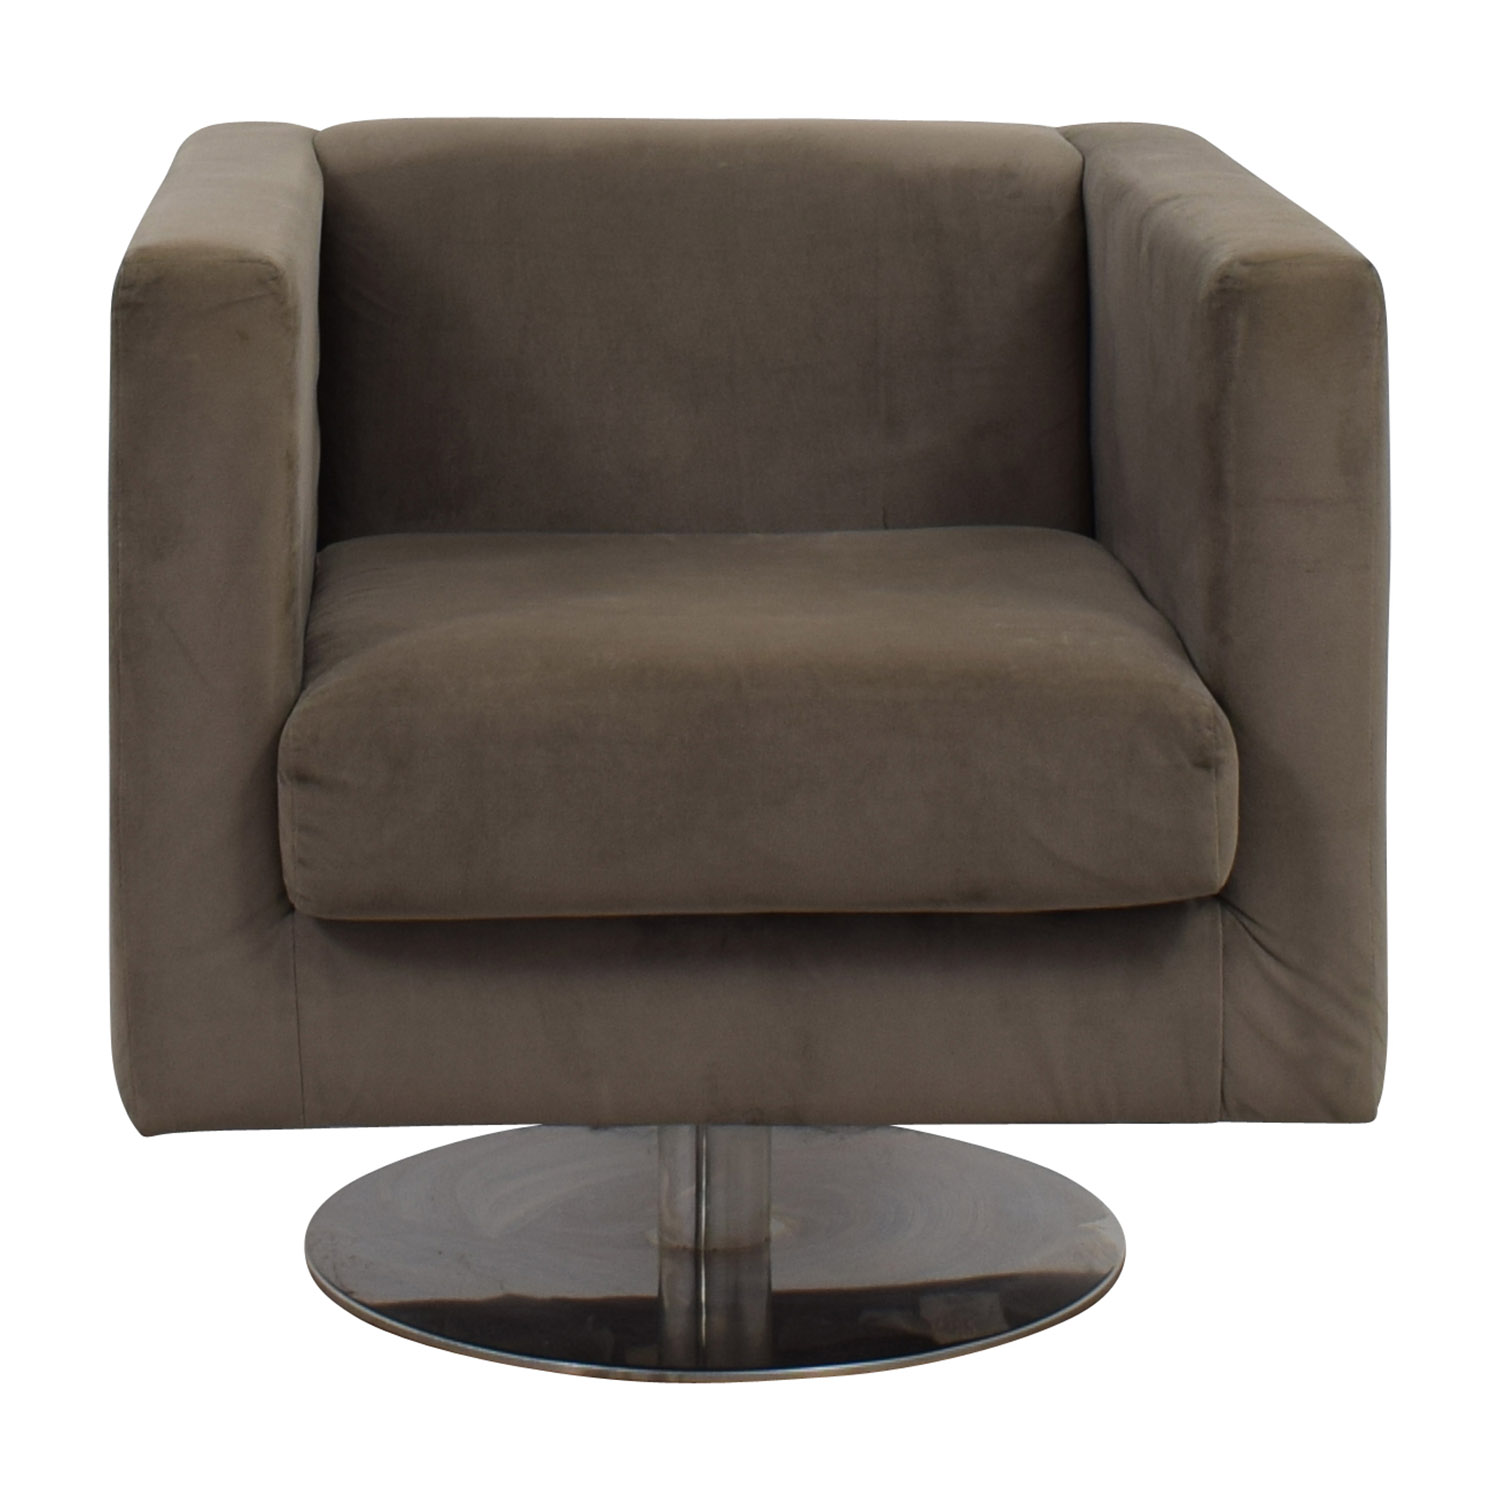 Grey Alex Swivel Chair / Chairs